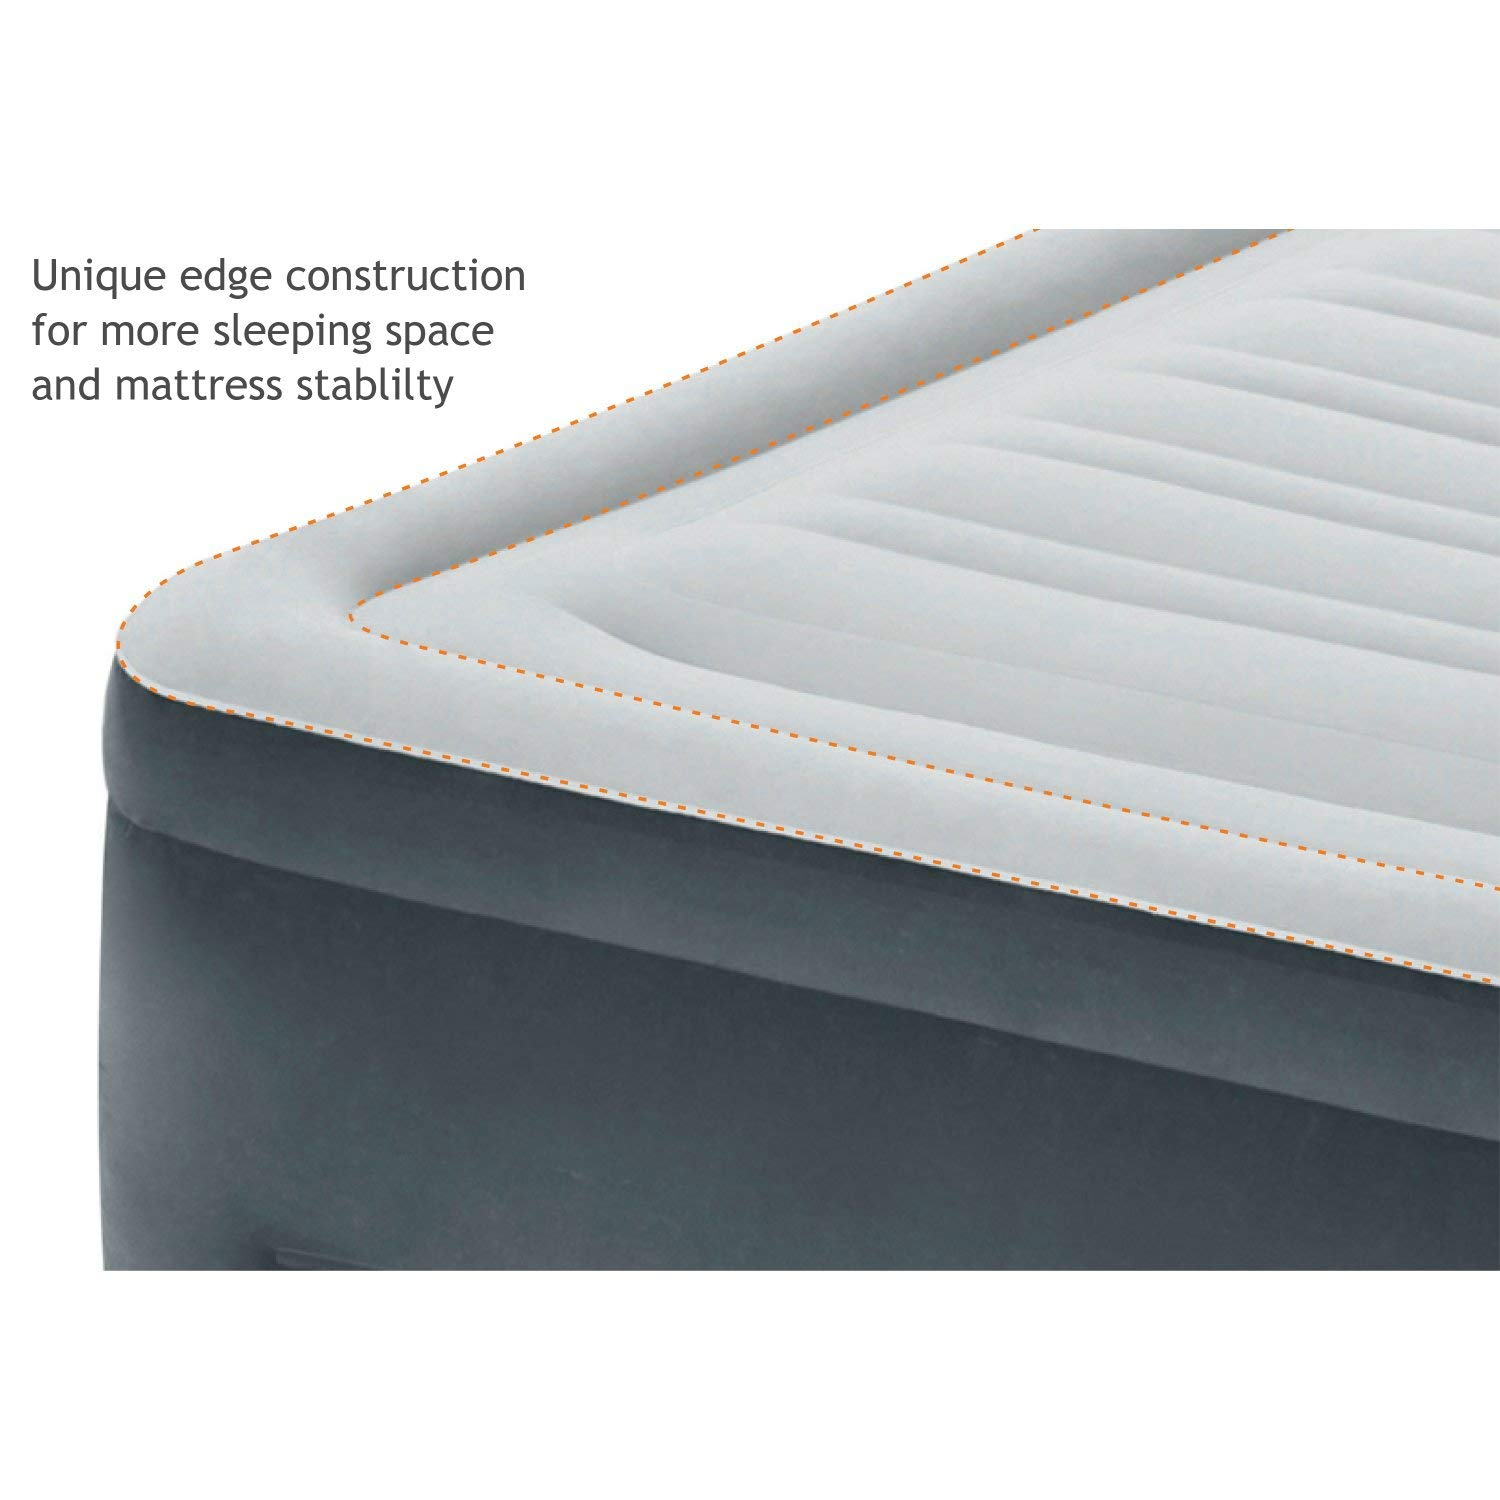 Intex Comfort plush topratedhomeproducts